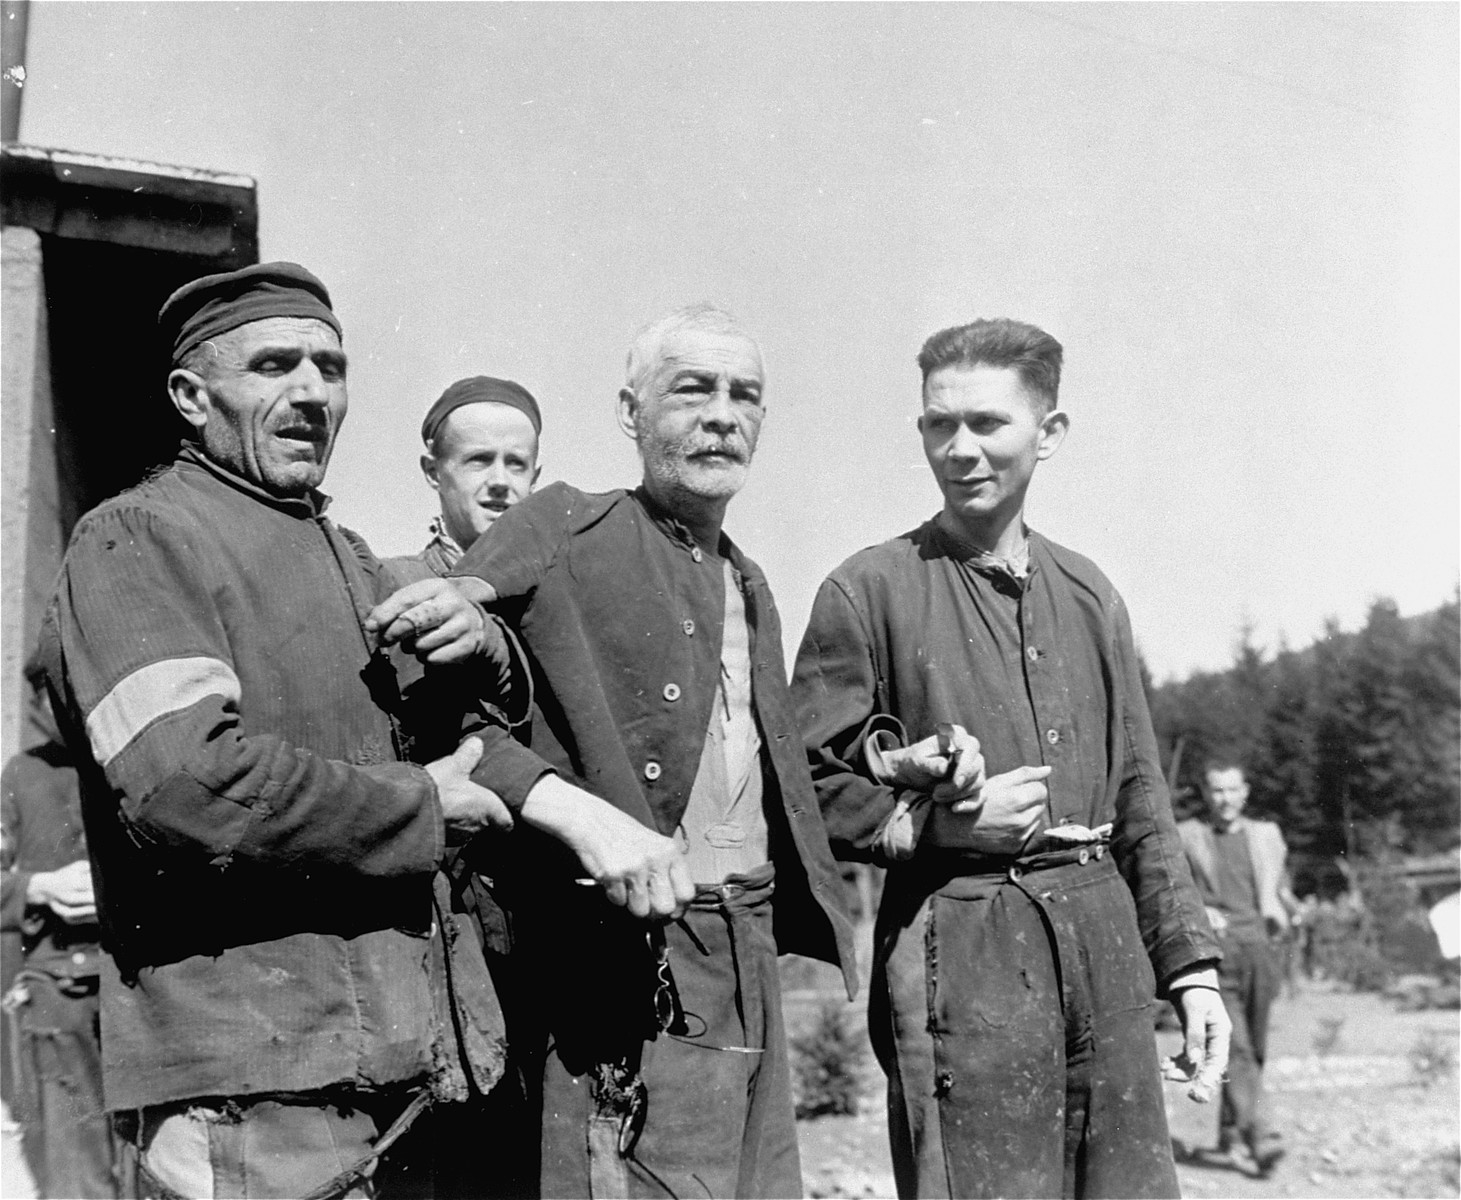 Two fellow prisoners support a weak and elderly Jewish man in the concentration camp at Holzen, Germany. These prisoners, subject to starvation, beatings, and disease, were liberated by units of the 9th U.S. Army.